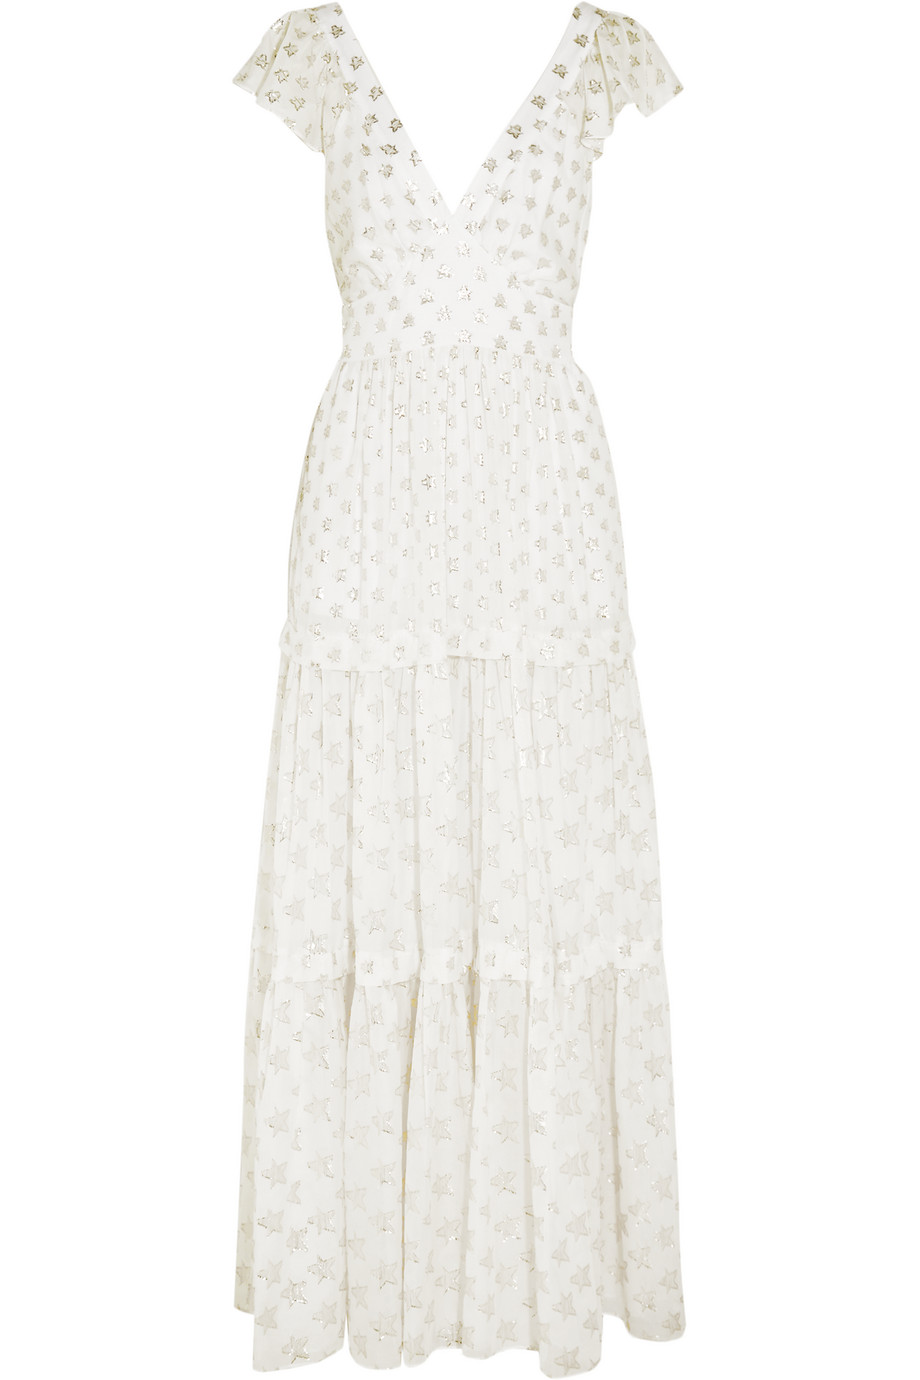 Peggy Metallic Fil Coupé Gown, Temperley London, White, Women's - Metallic, Size: 10